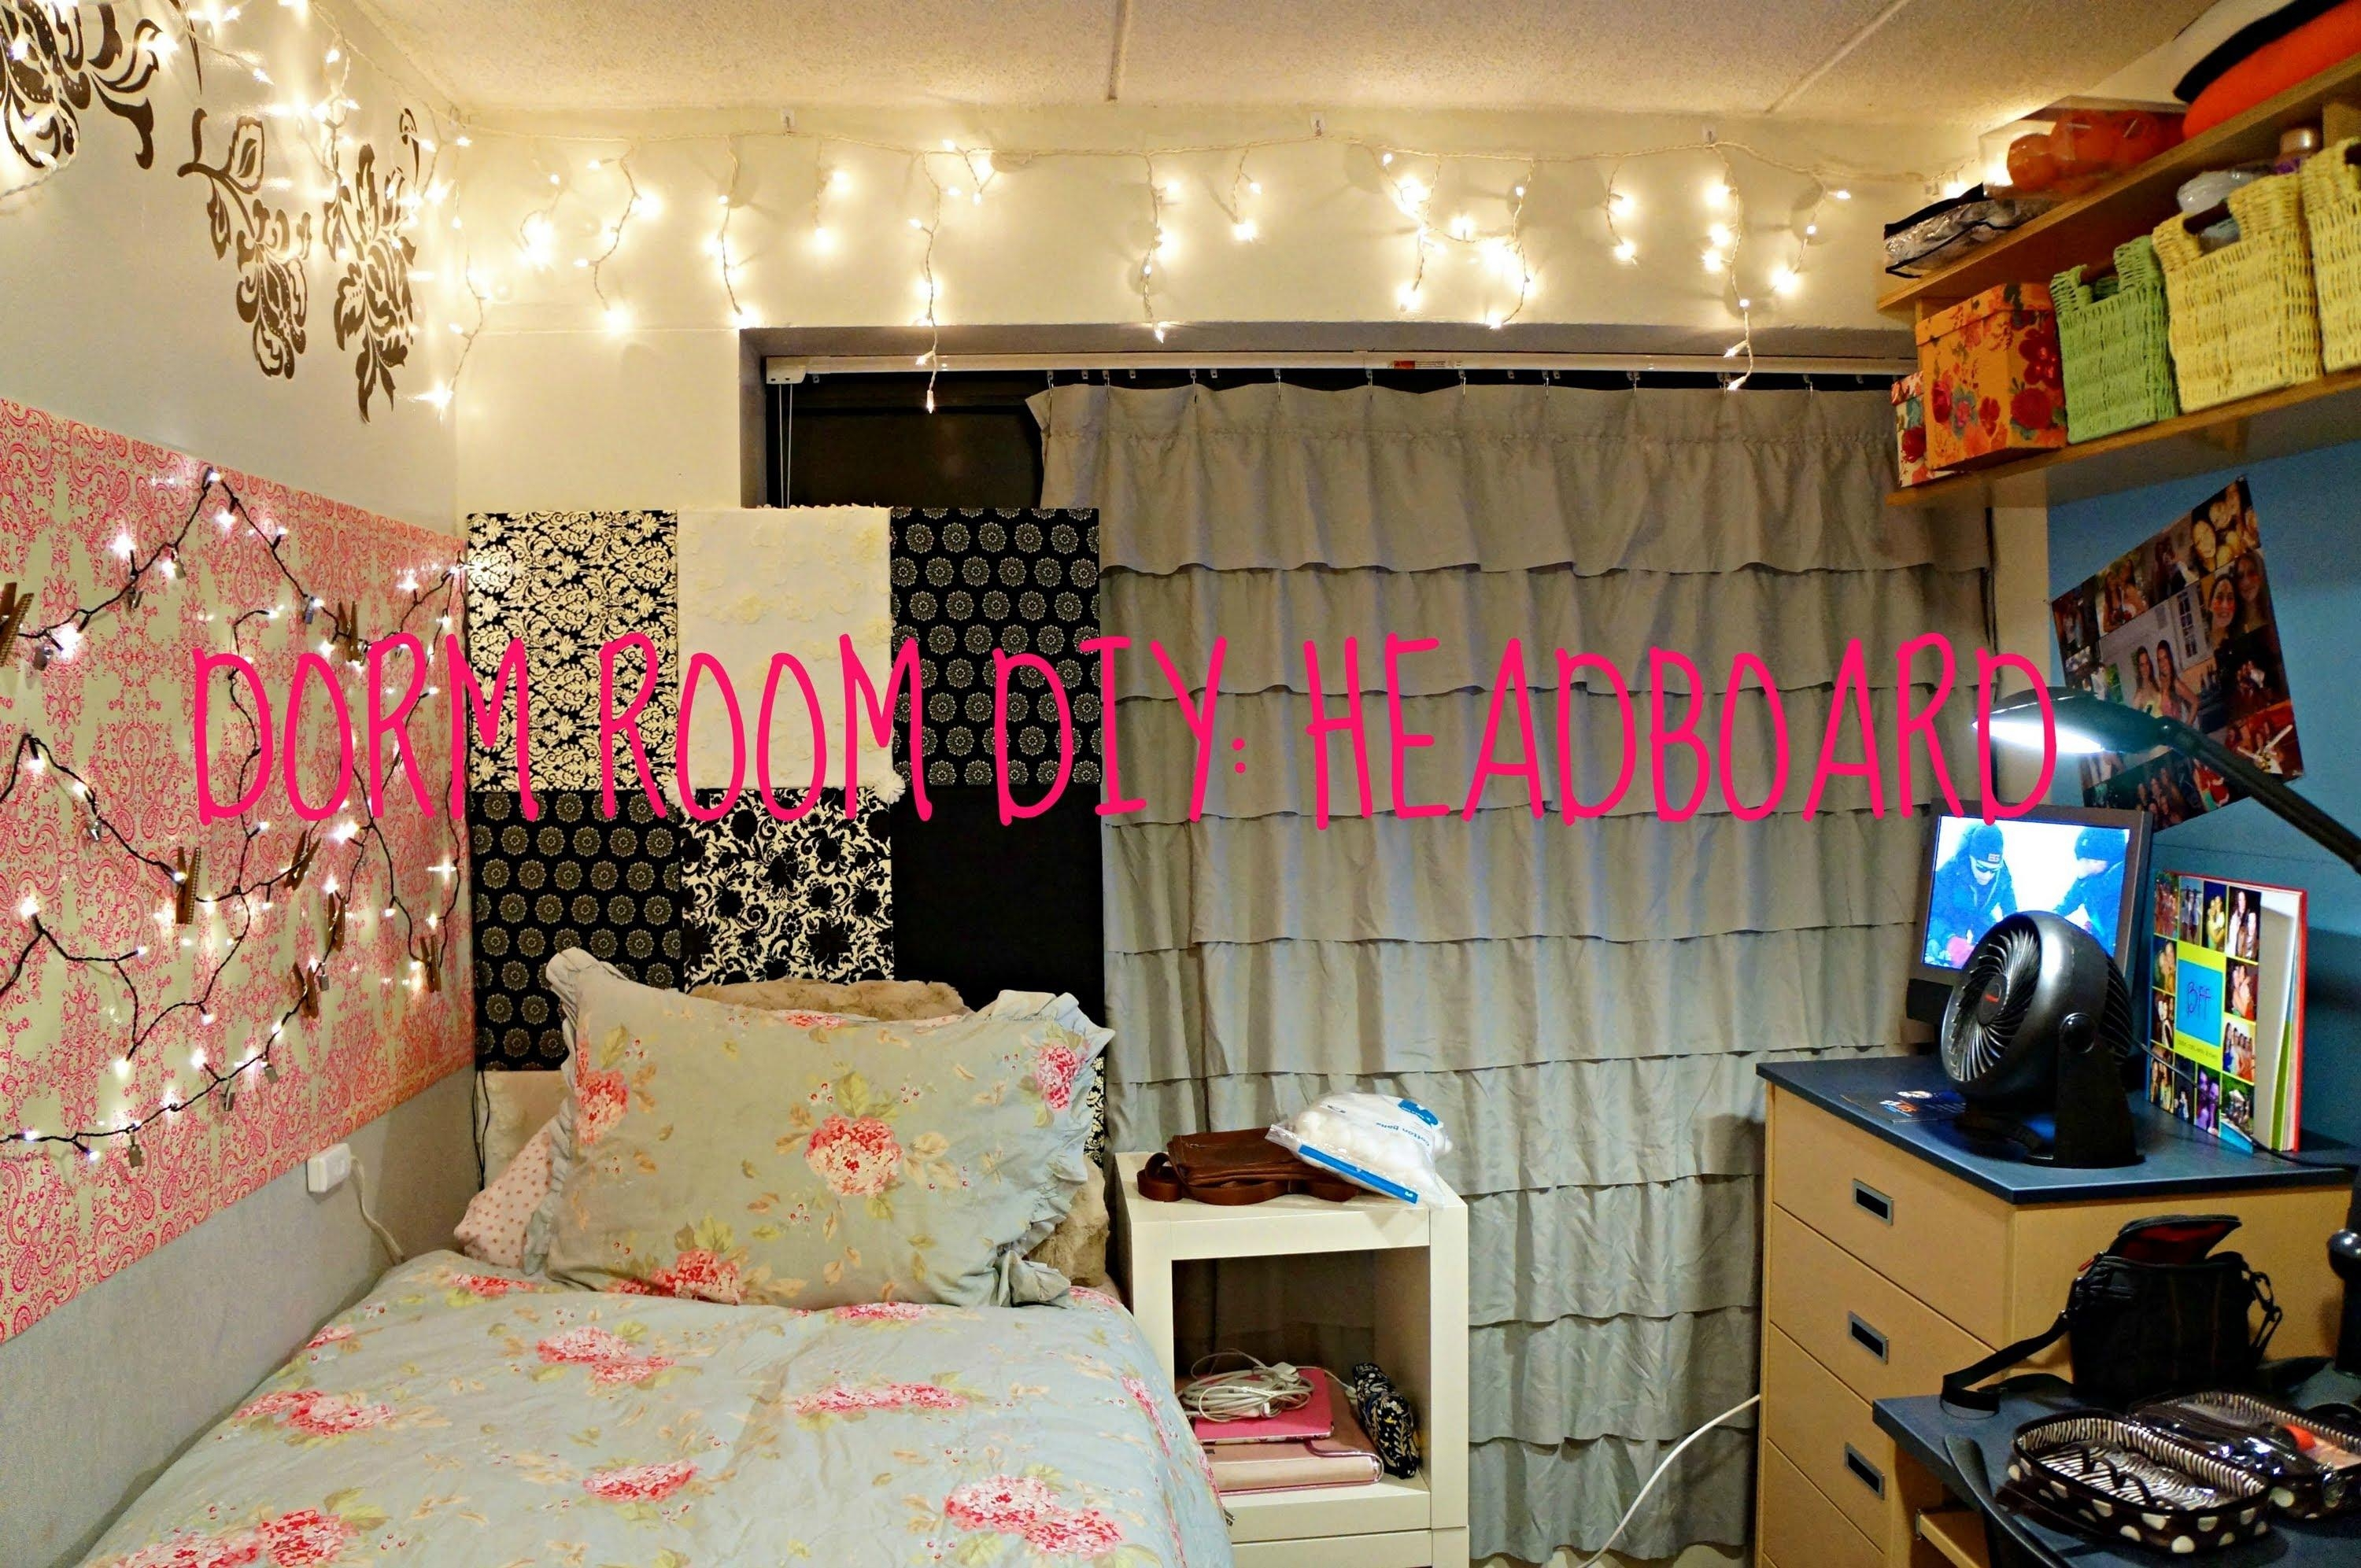 Diy: Headboard! | Dorm Room Diy – Youtube Within Wall Art For College Dorms (View 13 of 20)